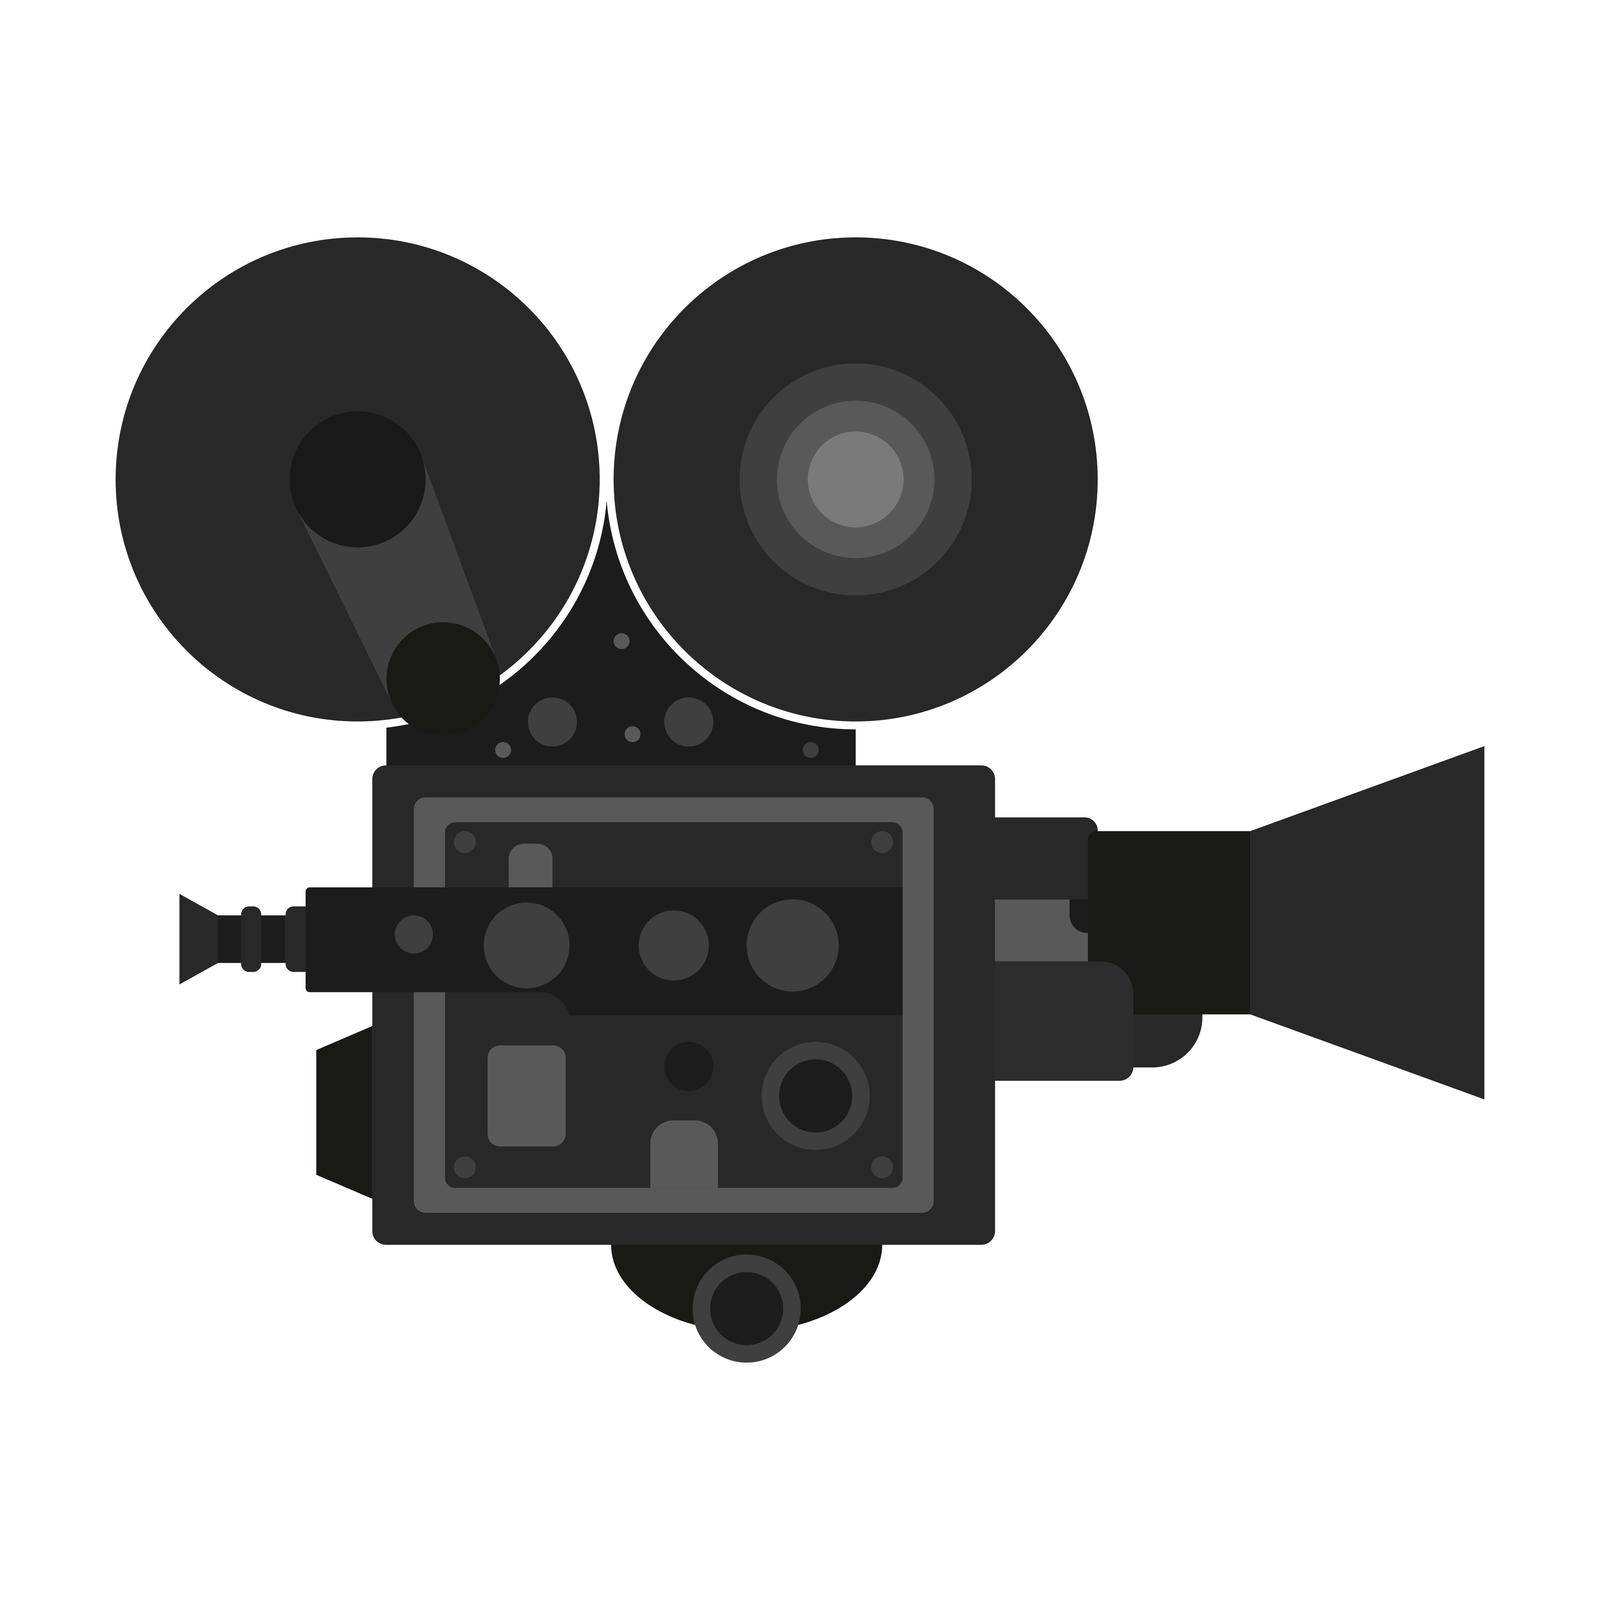 old vintage camcorder. Filming a movie on retro instrument. Film recording of a movie. Isolated vector on white background